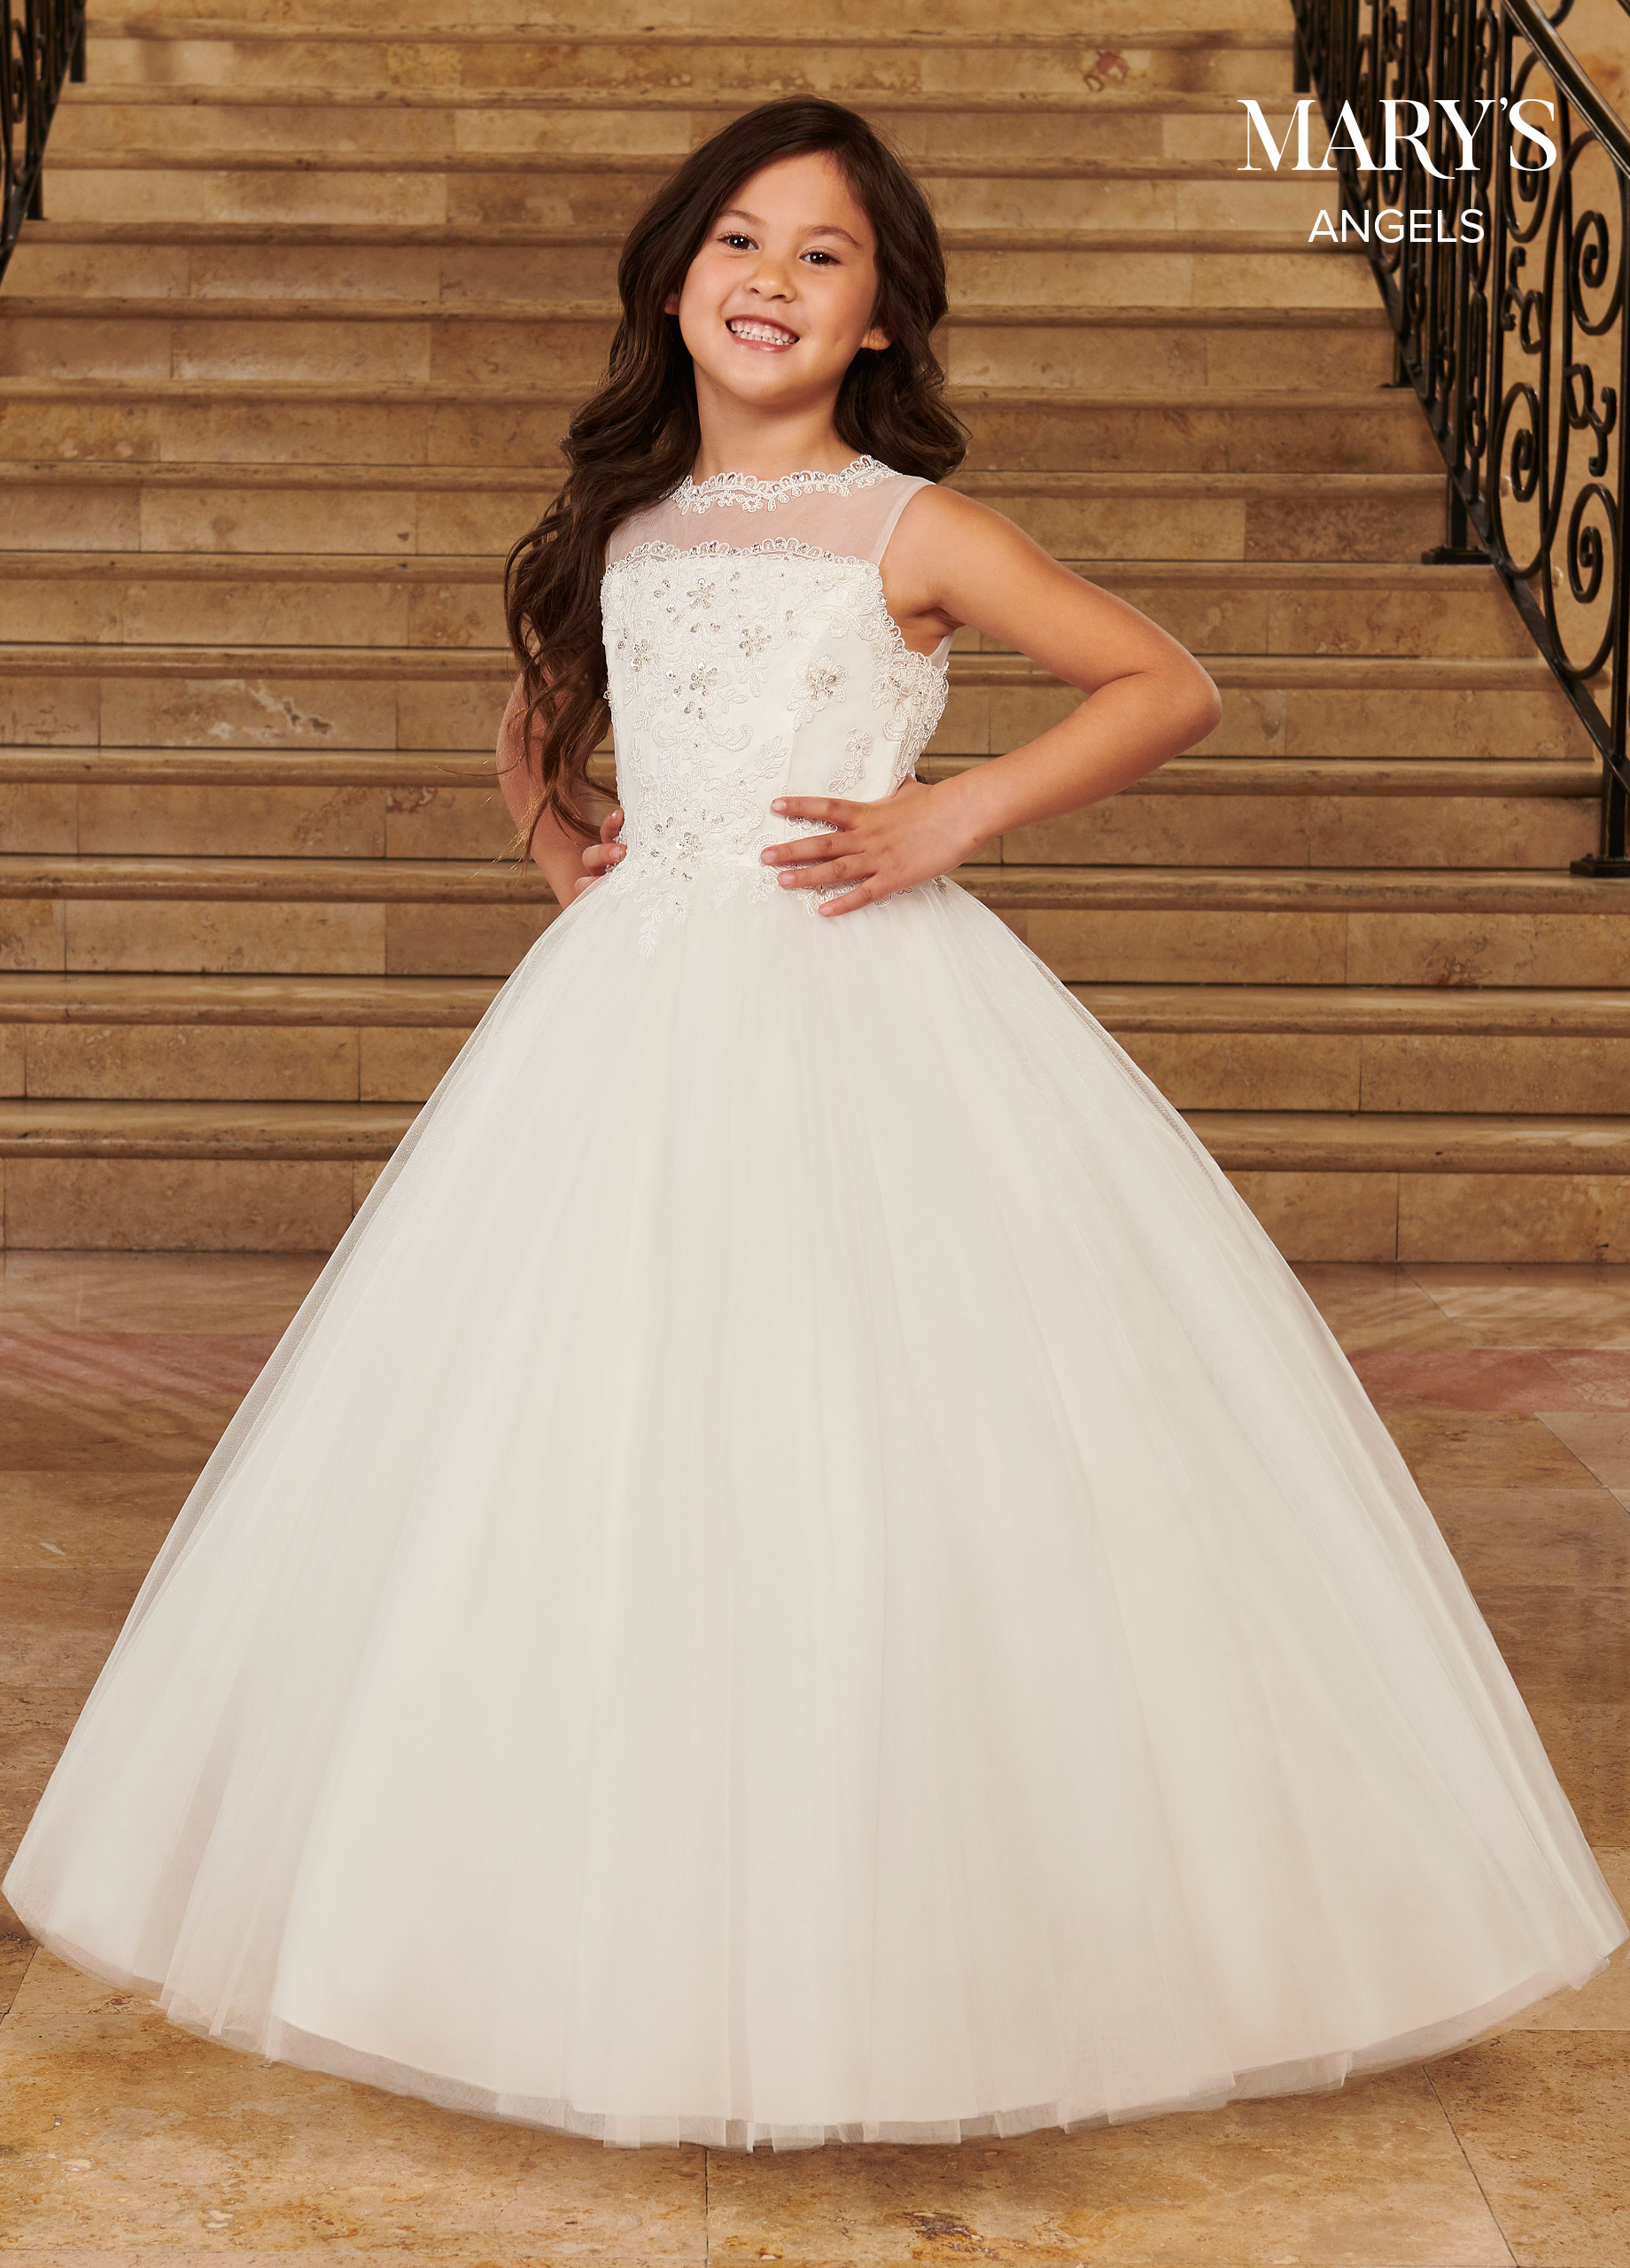 Angel Flower Girl Dresses   Mary's Angels   Style - MB9075